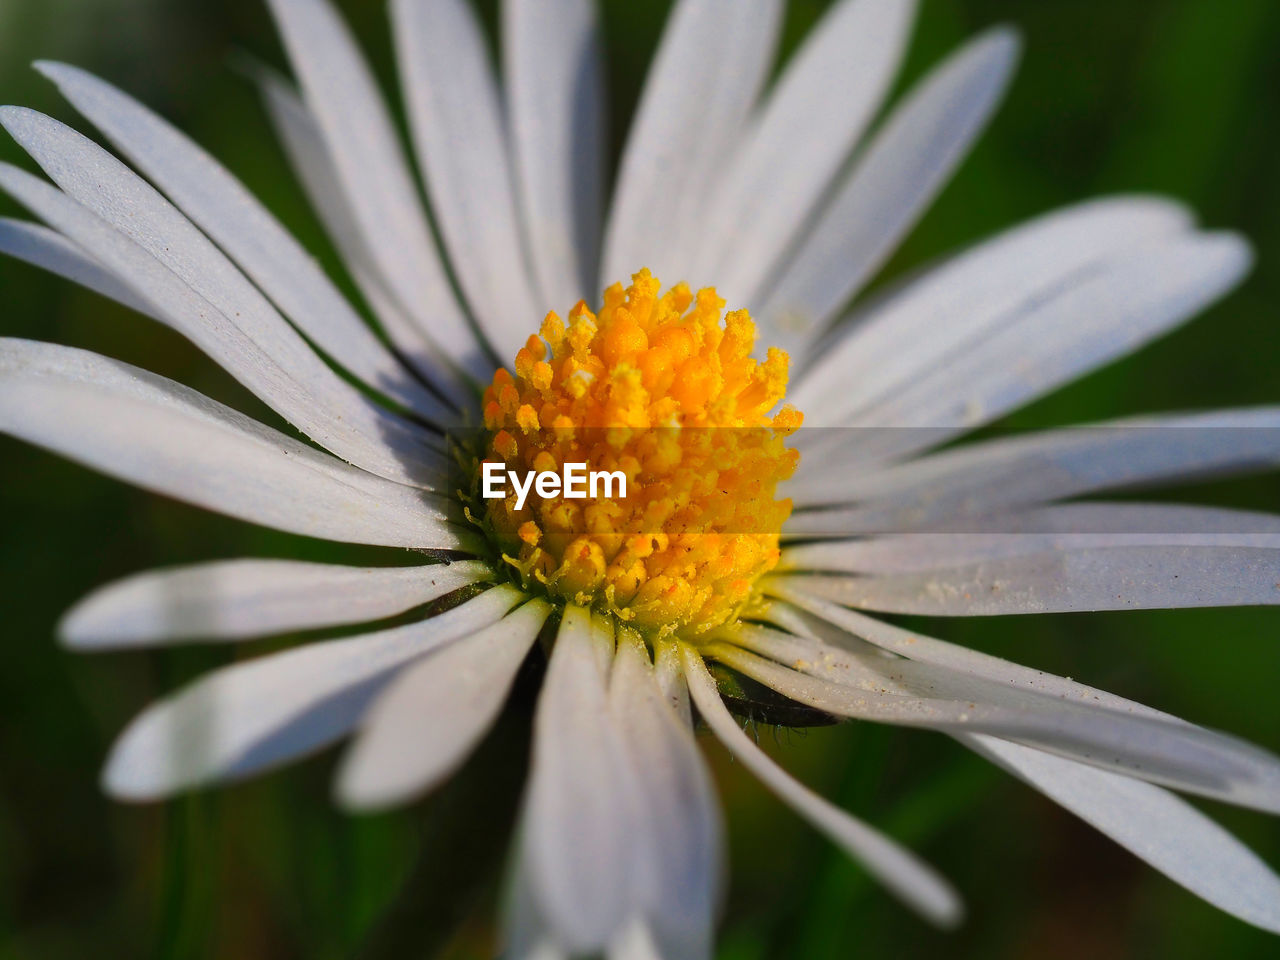 CLOSE-UP OF WHITE DAISY FLOWER WITH YELLOW POLLEN